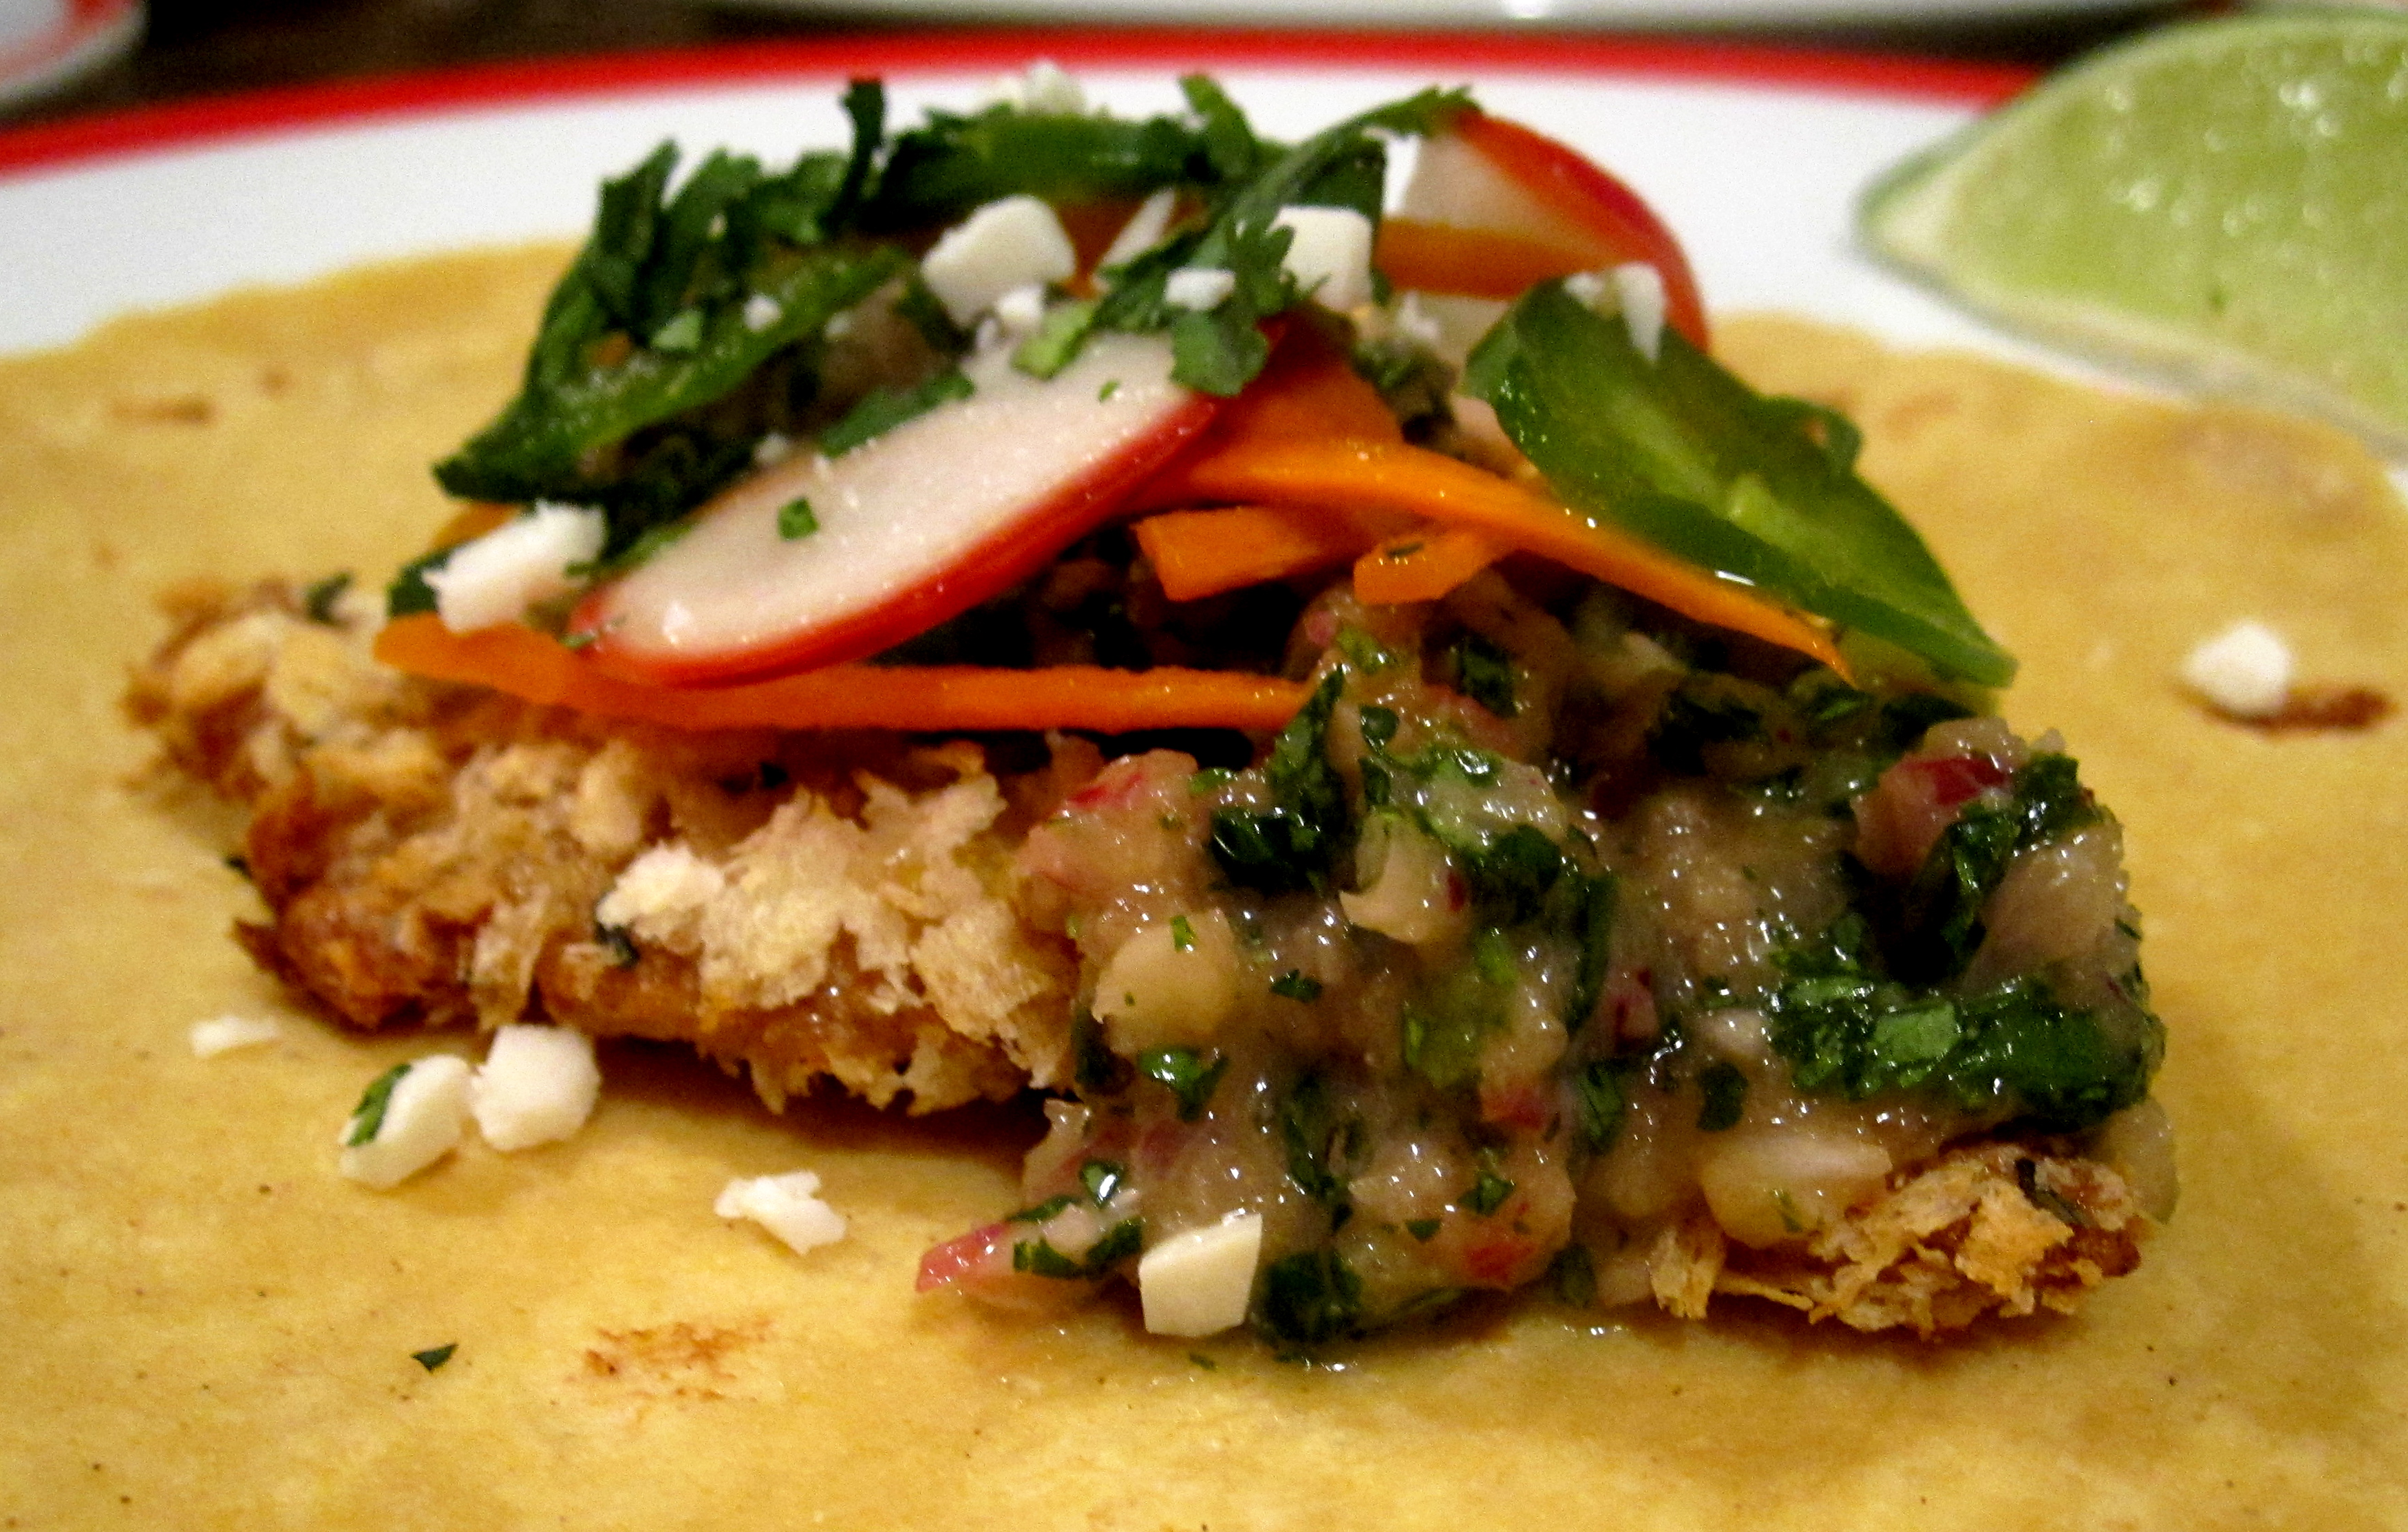 Top recipe fish tacos with serrano chile sauce recipe for Fish taco recipe sauce